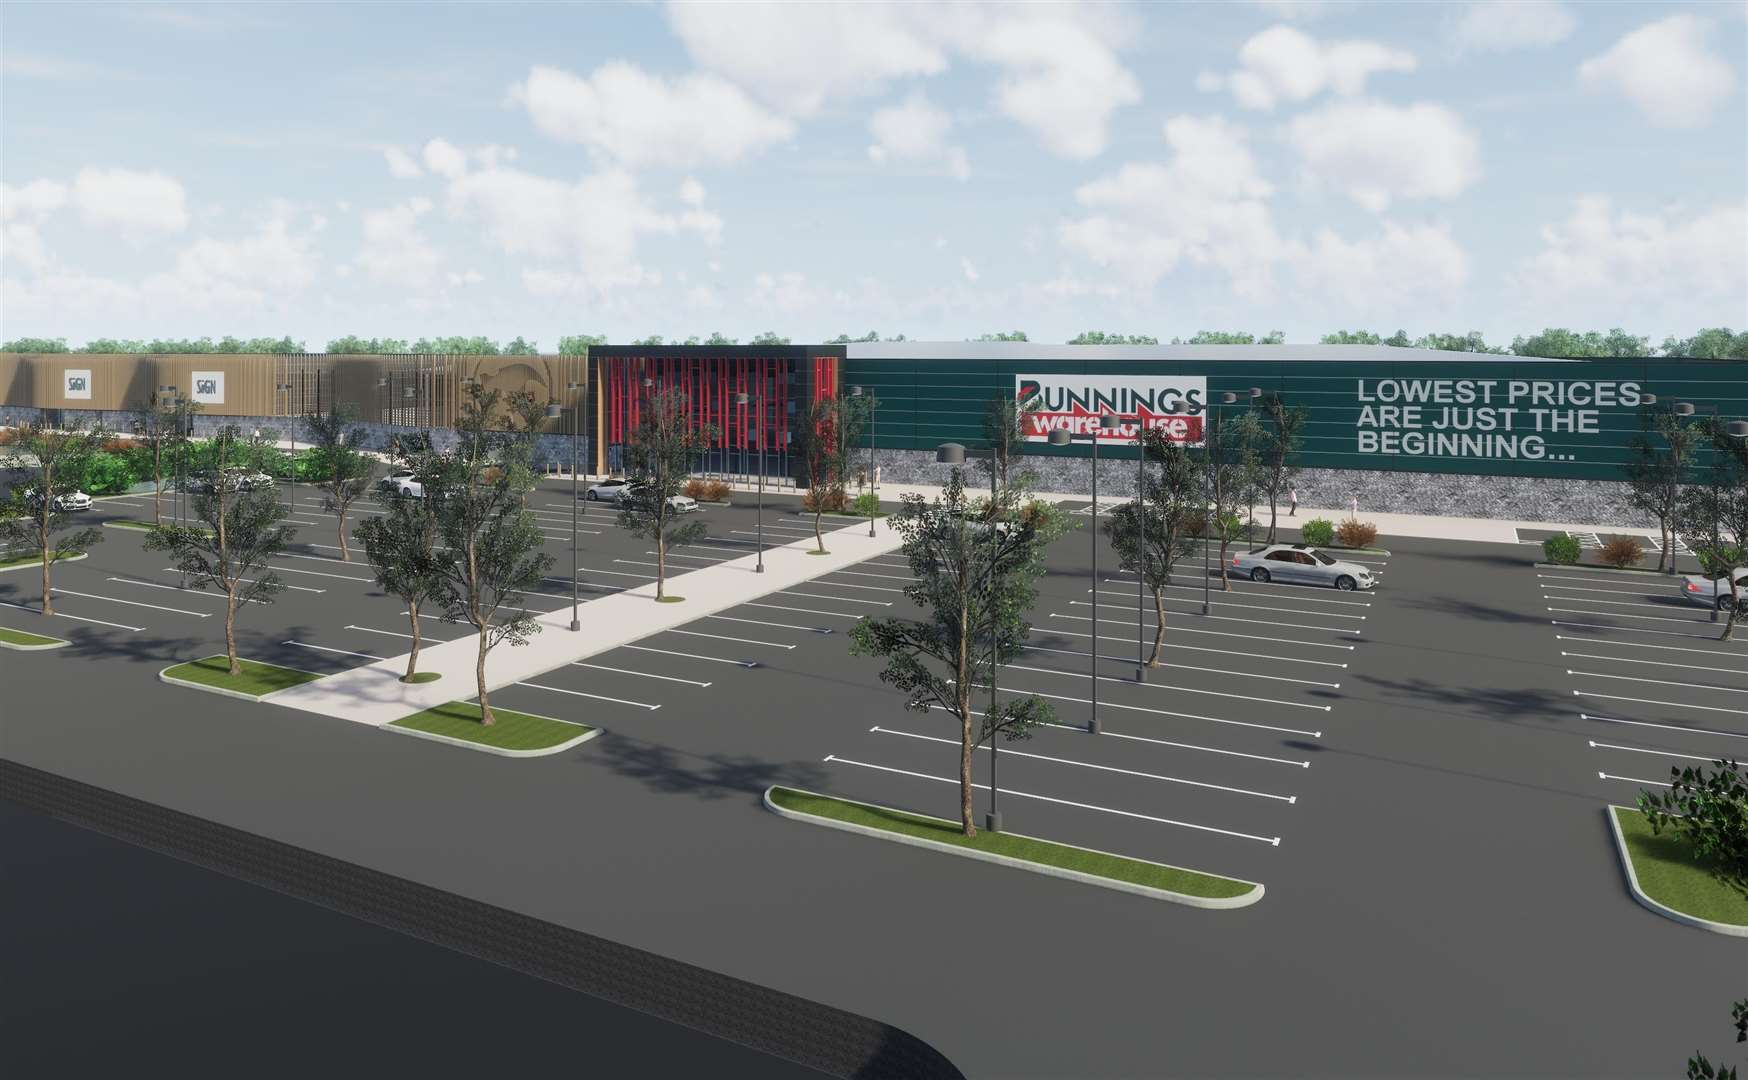 How the Bunnings store would have looked